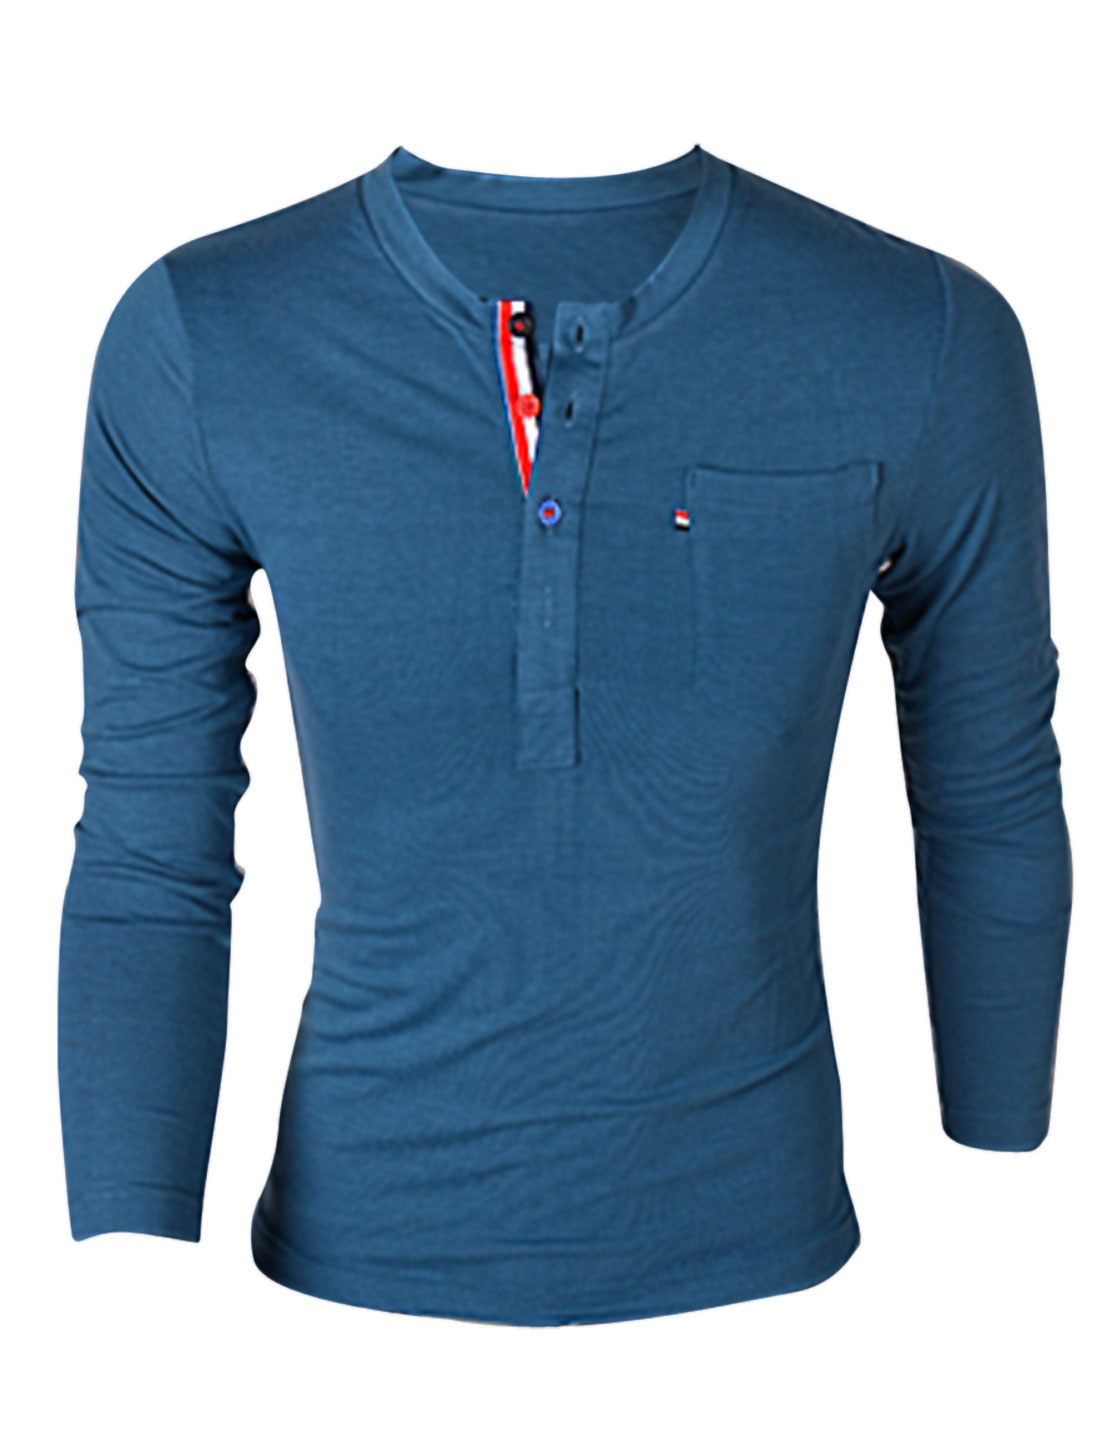 Men Four Buttons w Ribbon Decor Front One Chest Pocket Henley Shirt Blue M